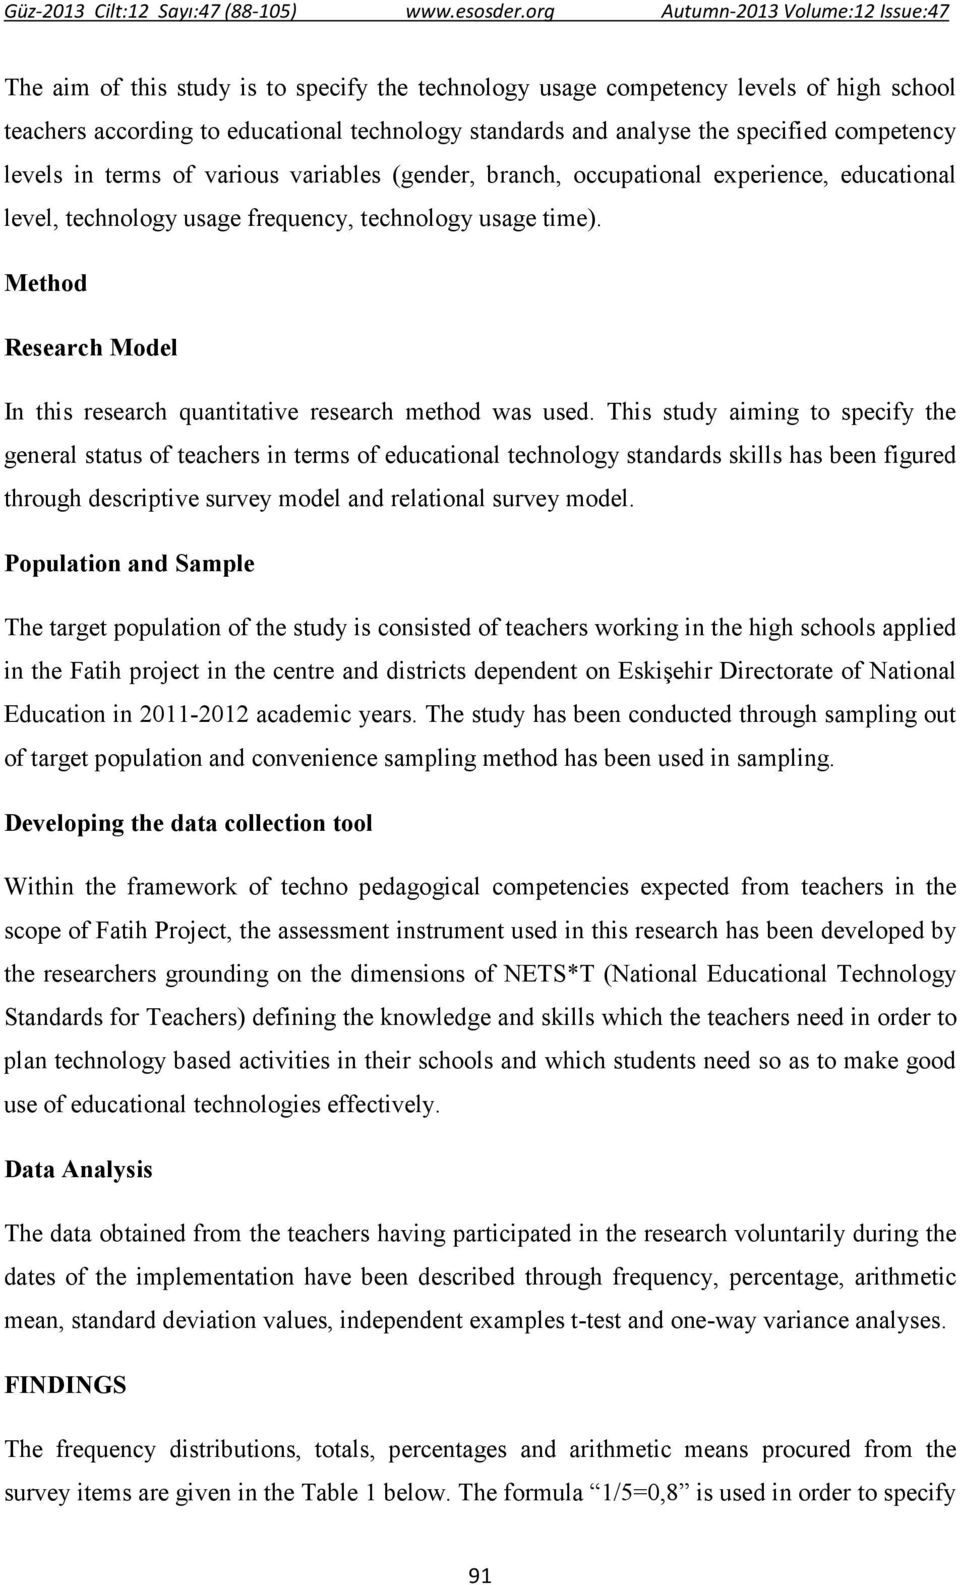 Method Research Model In this research quantitative research method was used.